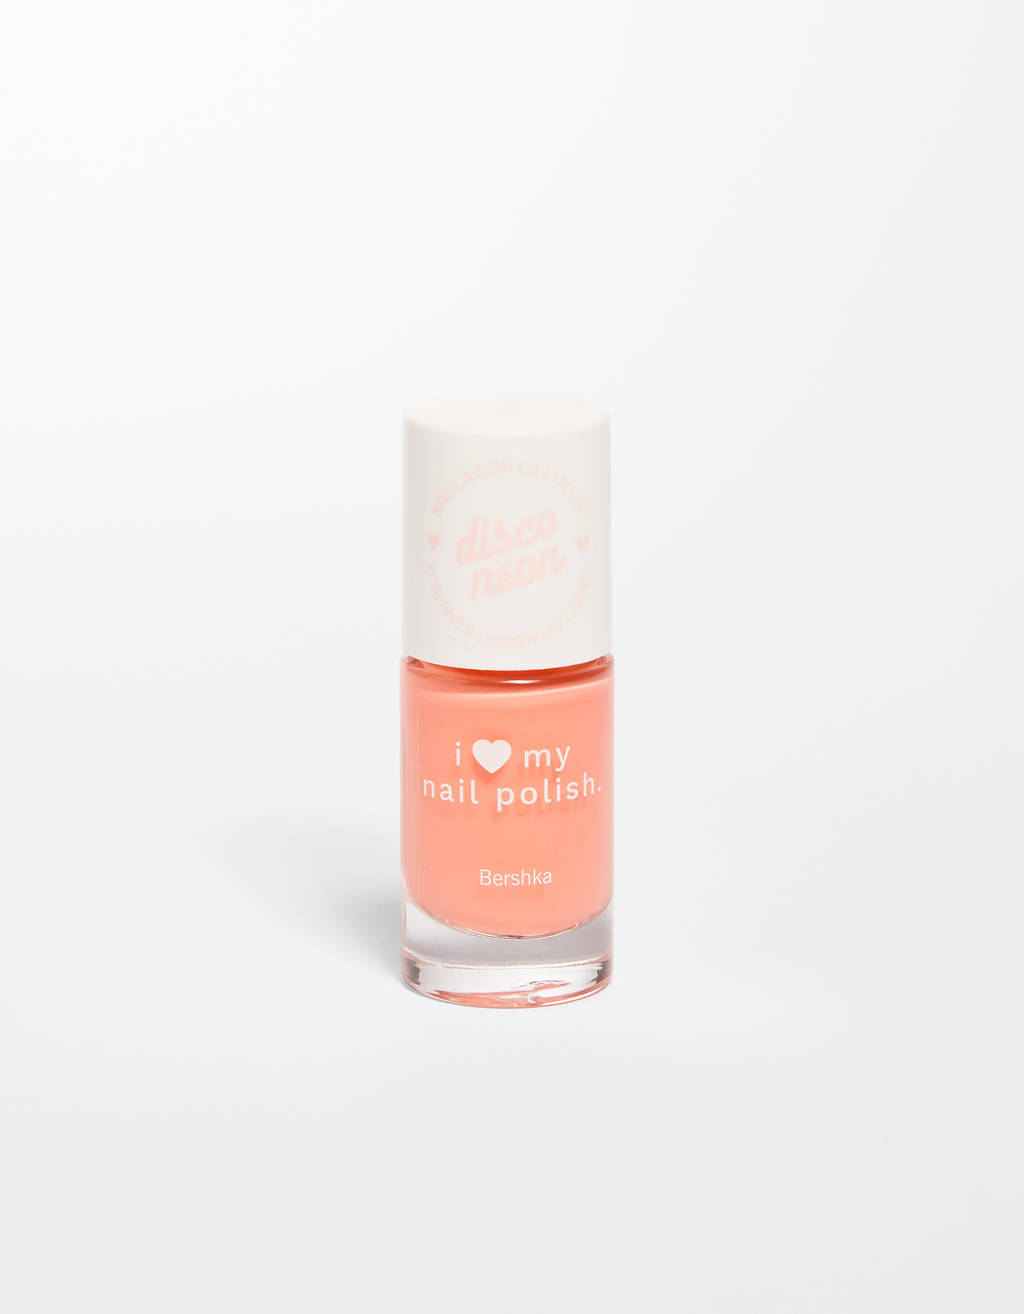 Я ❤ ЛАК ДЛЯ НОГТЕЙ UV SUMMER PEACH